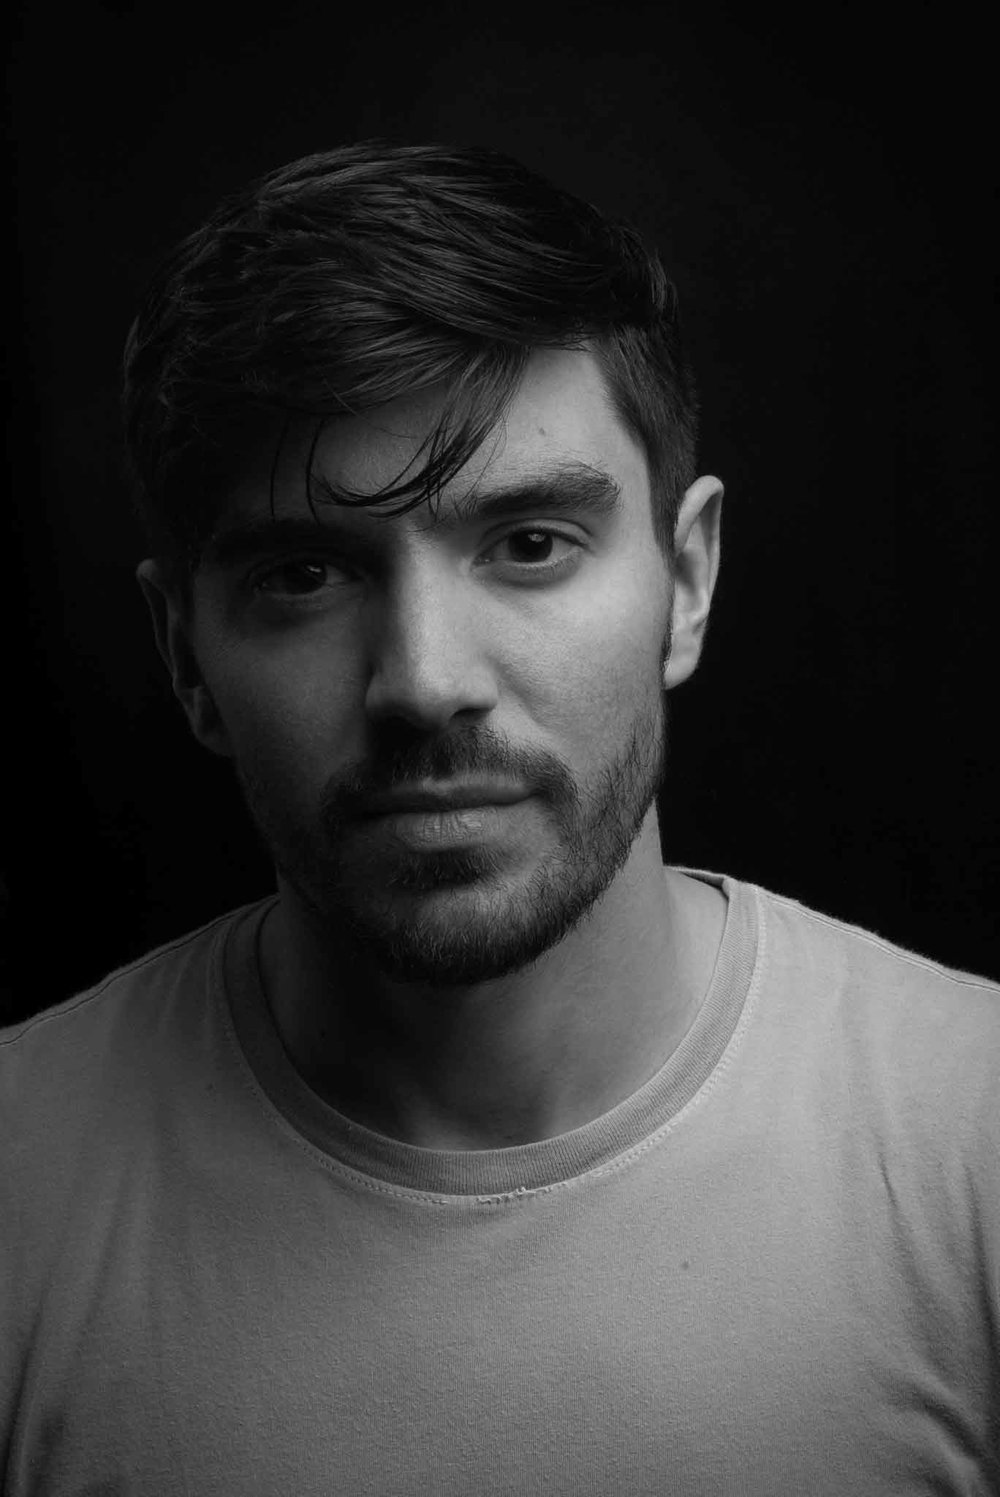 Steve Grand Album Cover portrait social media optimized 2048px 85kb .jpg